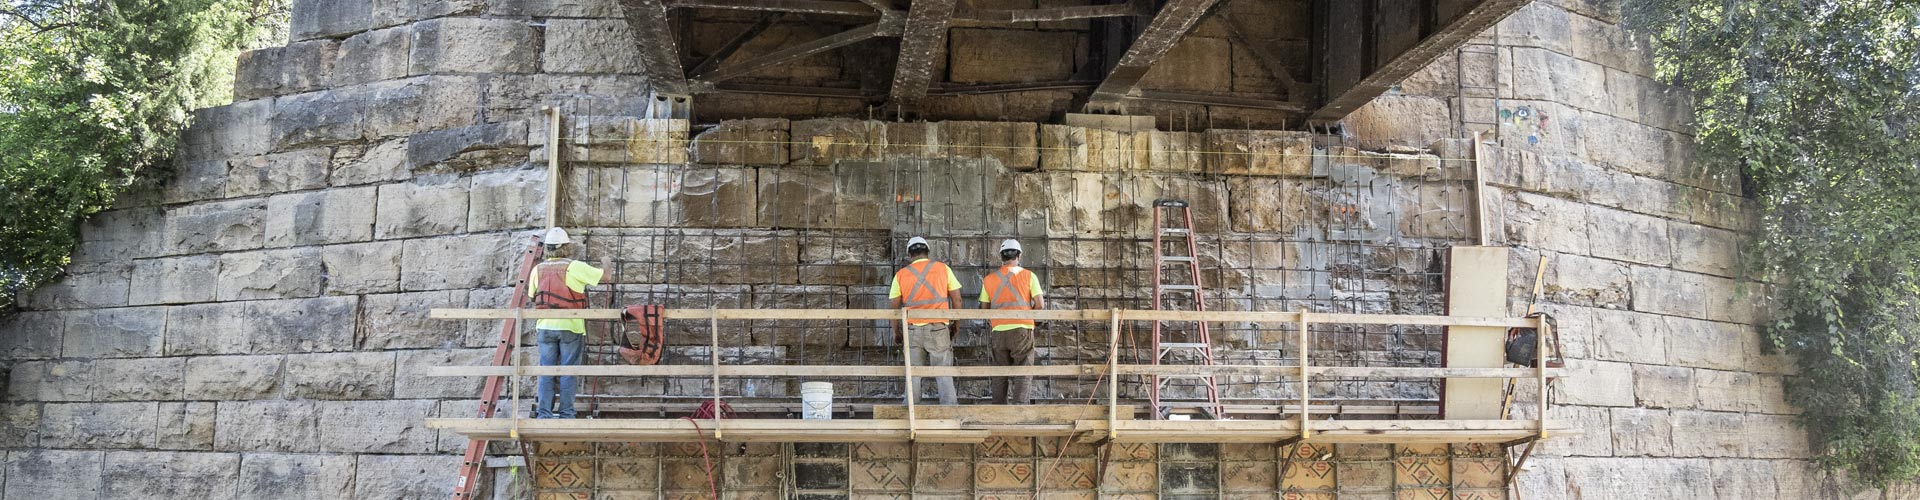 pier repairs, railroad bridge pier repairs, masonry pier repairs, bridge repairs